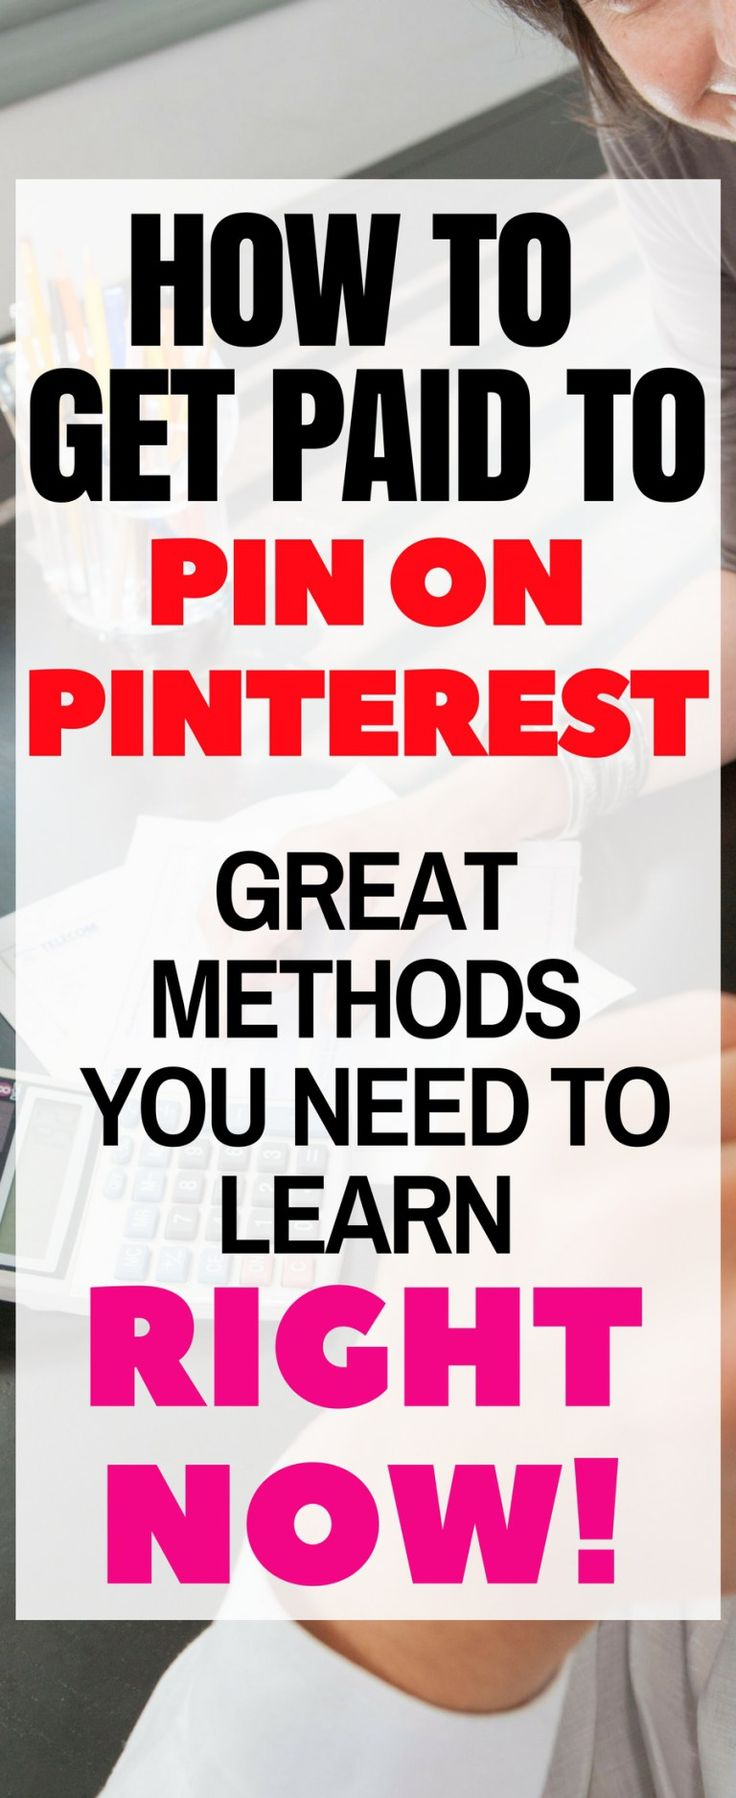 How To Make Money On Pinterest: Beginners Edition – Lana |Beauty, Fitness & Mommin